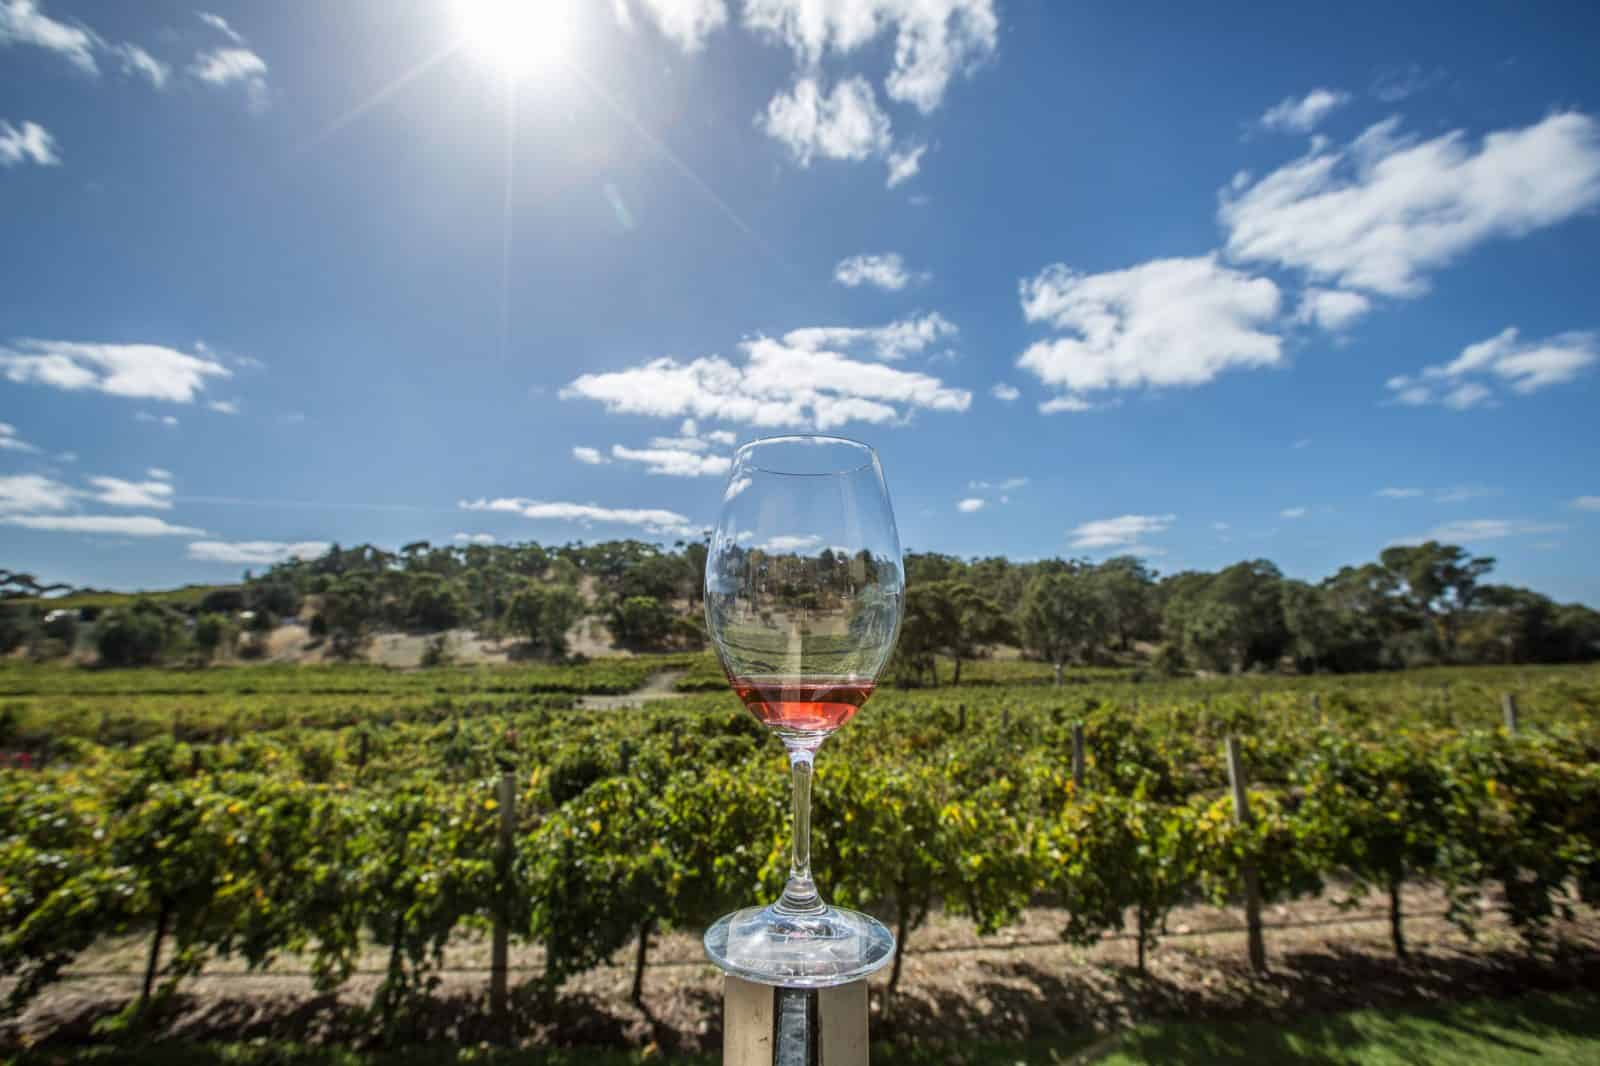 Adelaide, Australia is wine country!